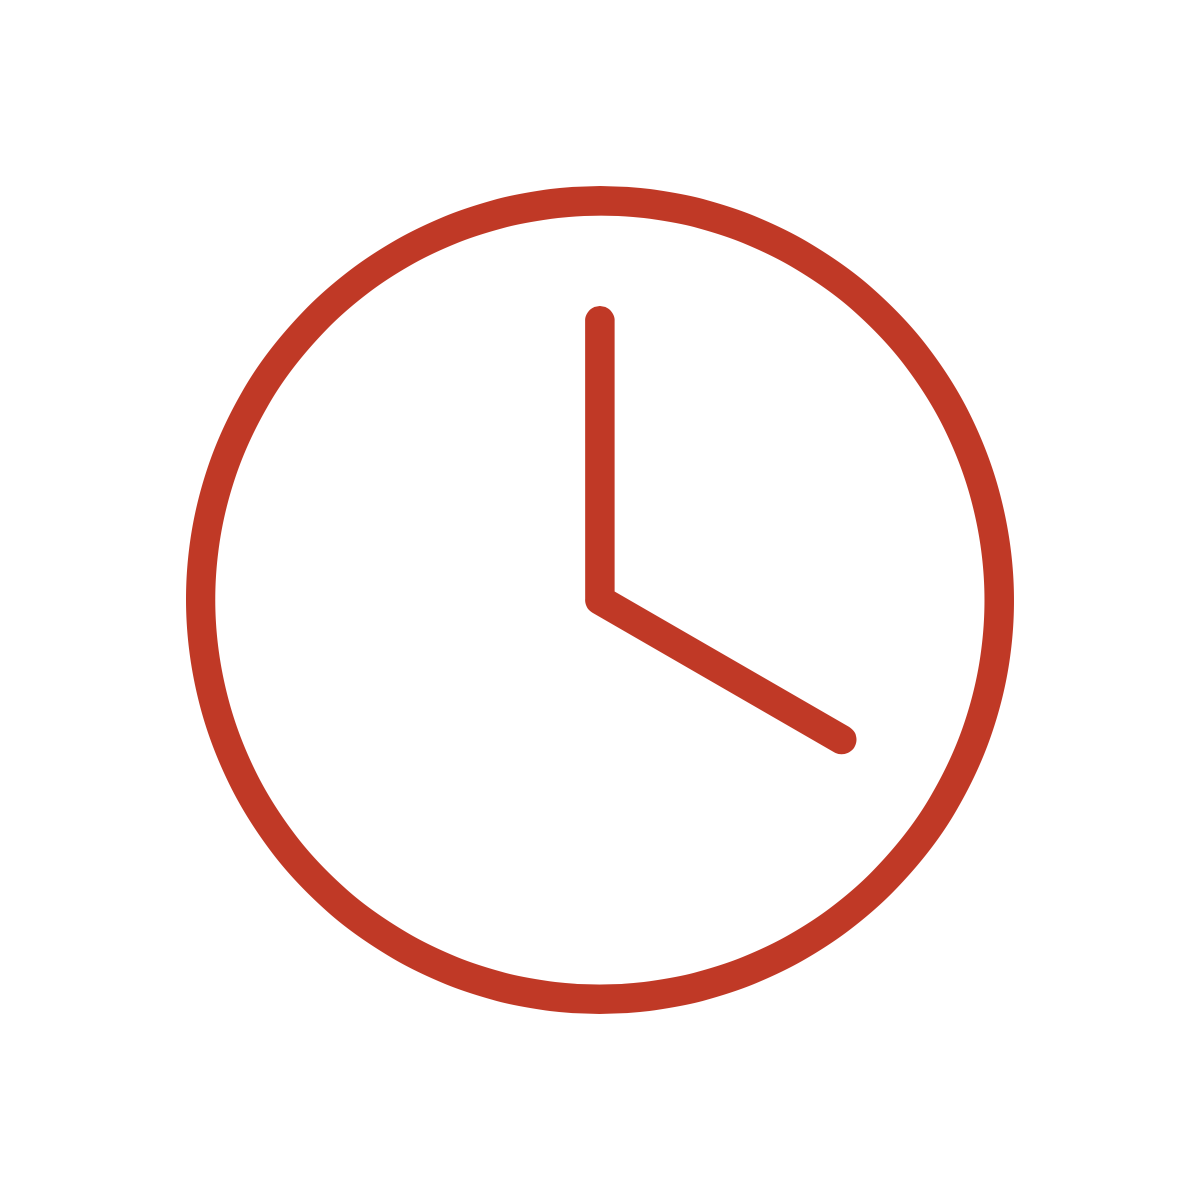 Clock icon representing probono time